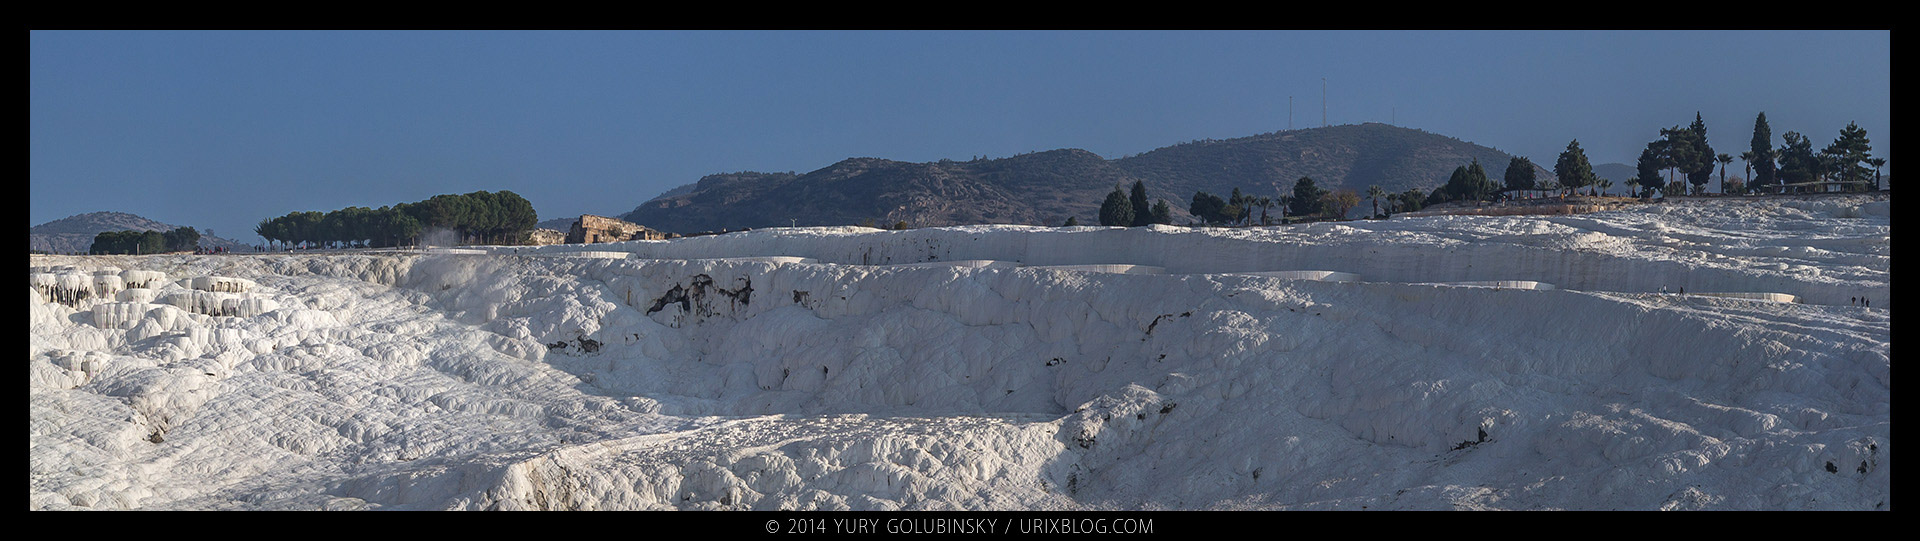 2014, Pamukkale, Travertine, Denizli, Turkey, panorama, nature, white, cotton castle